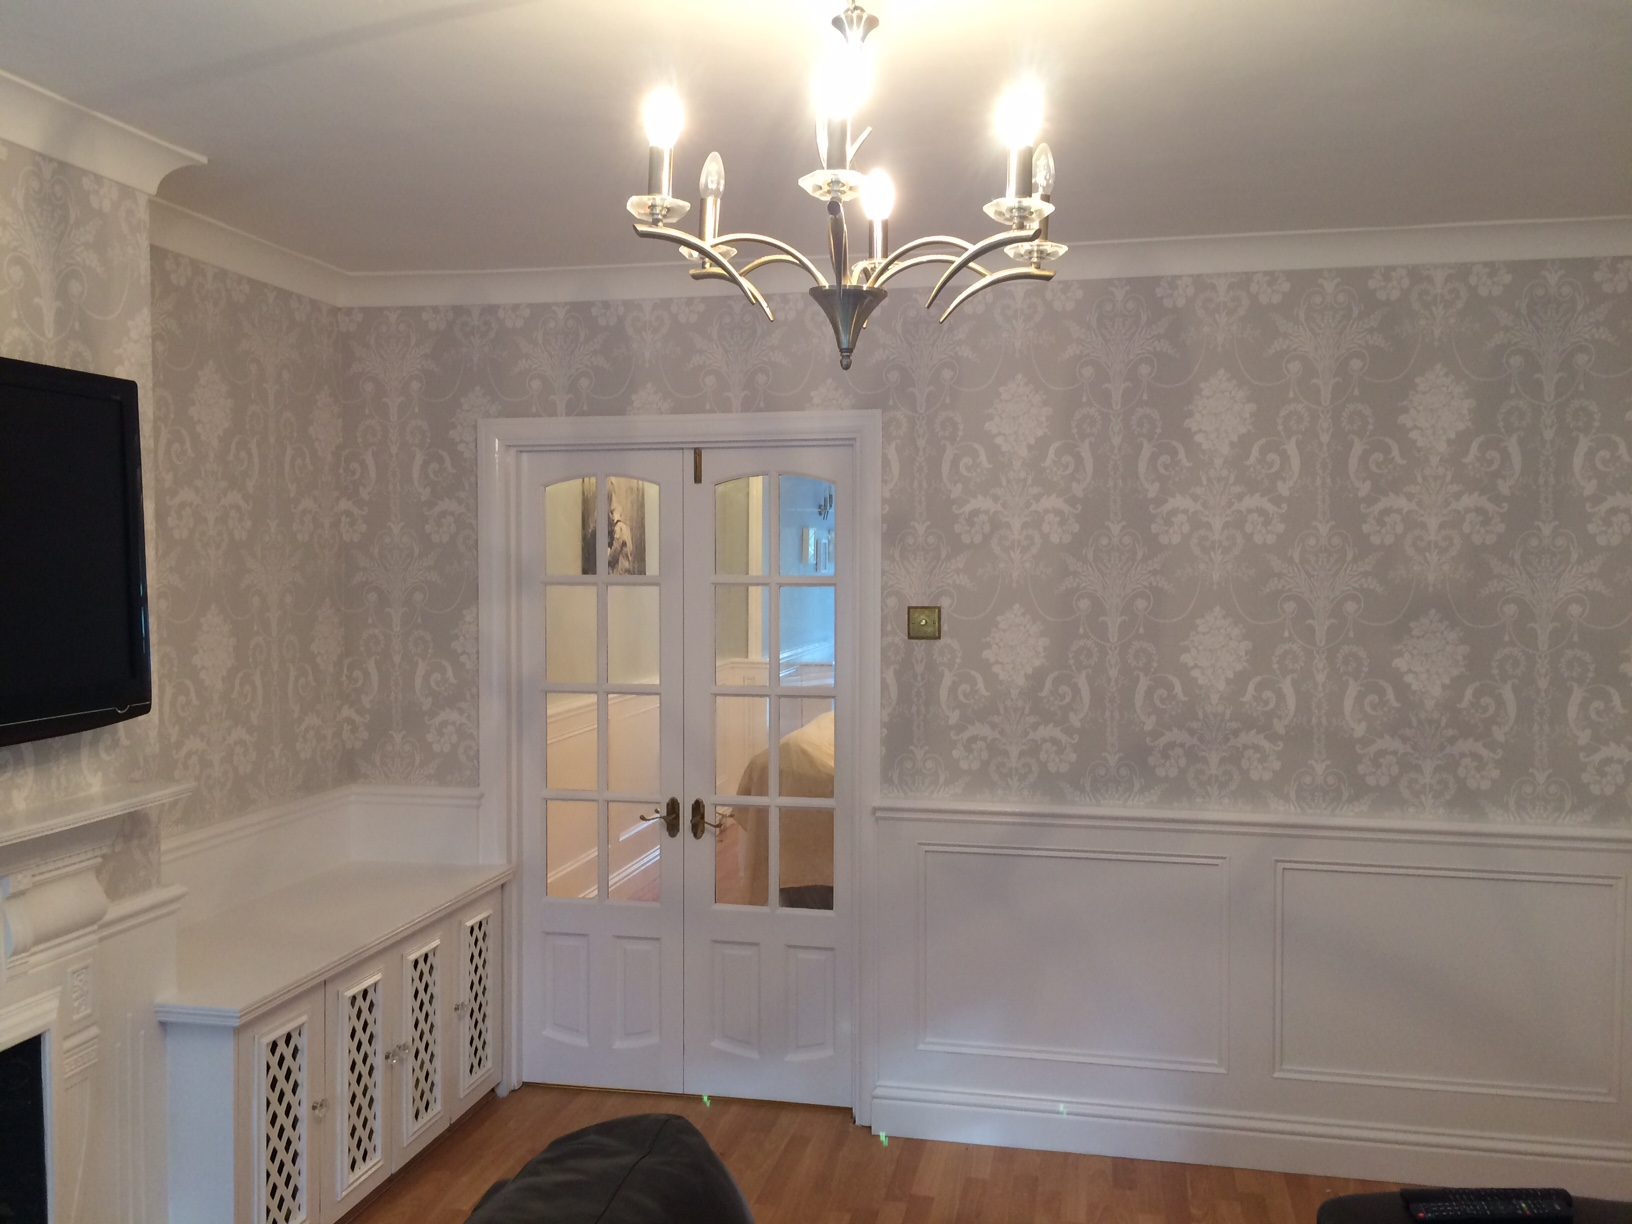 Bickley wallpapering